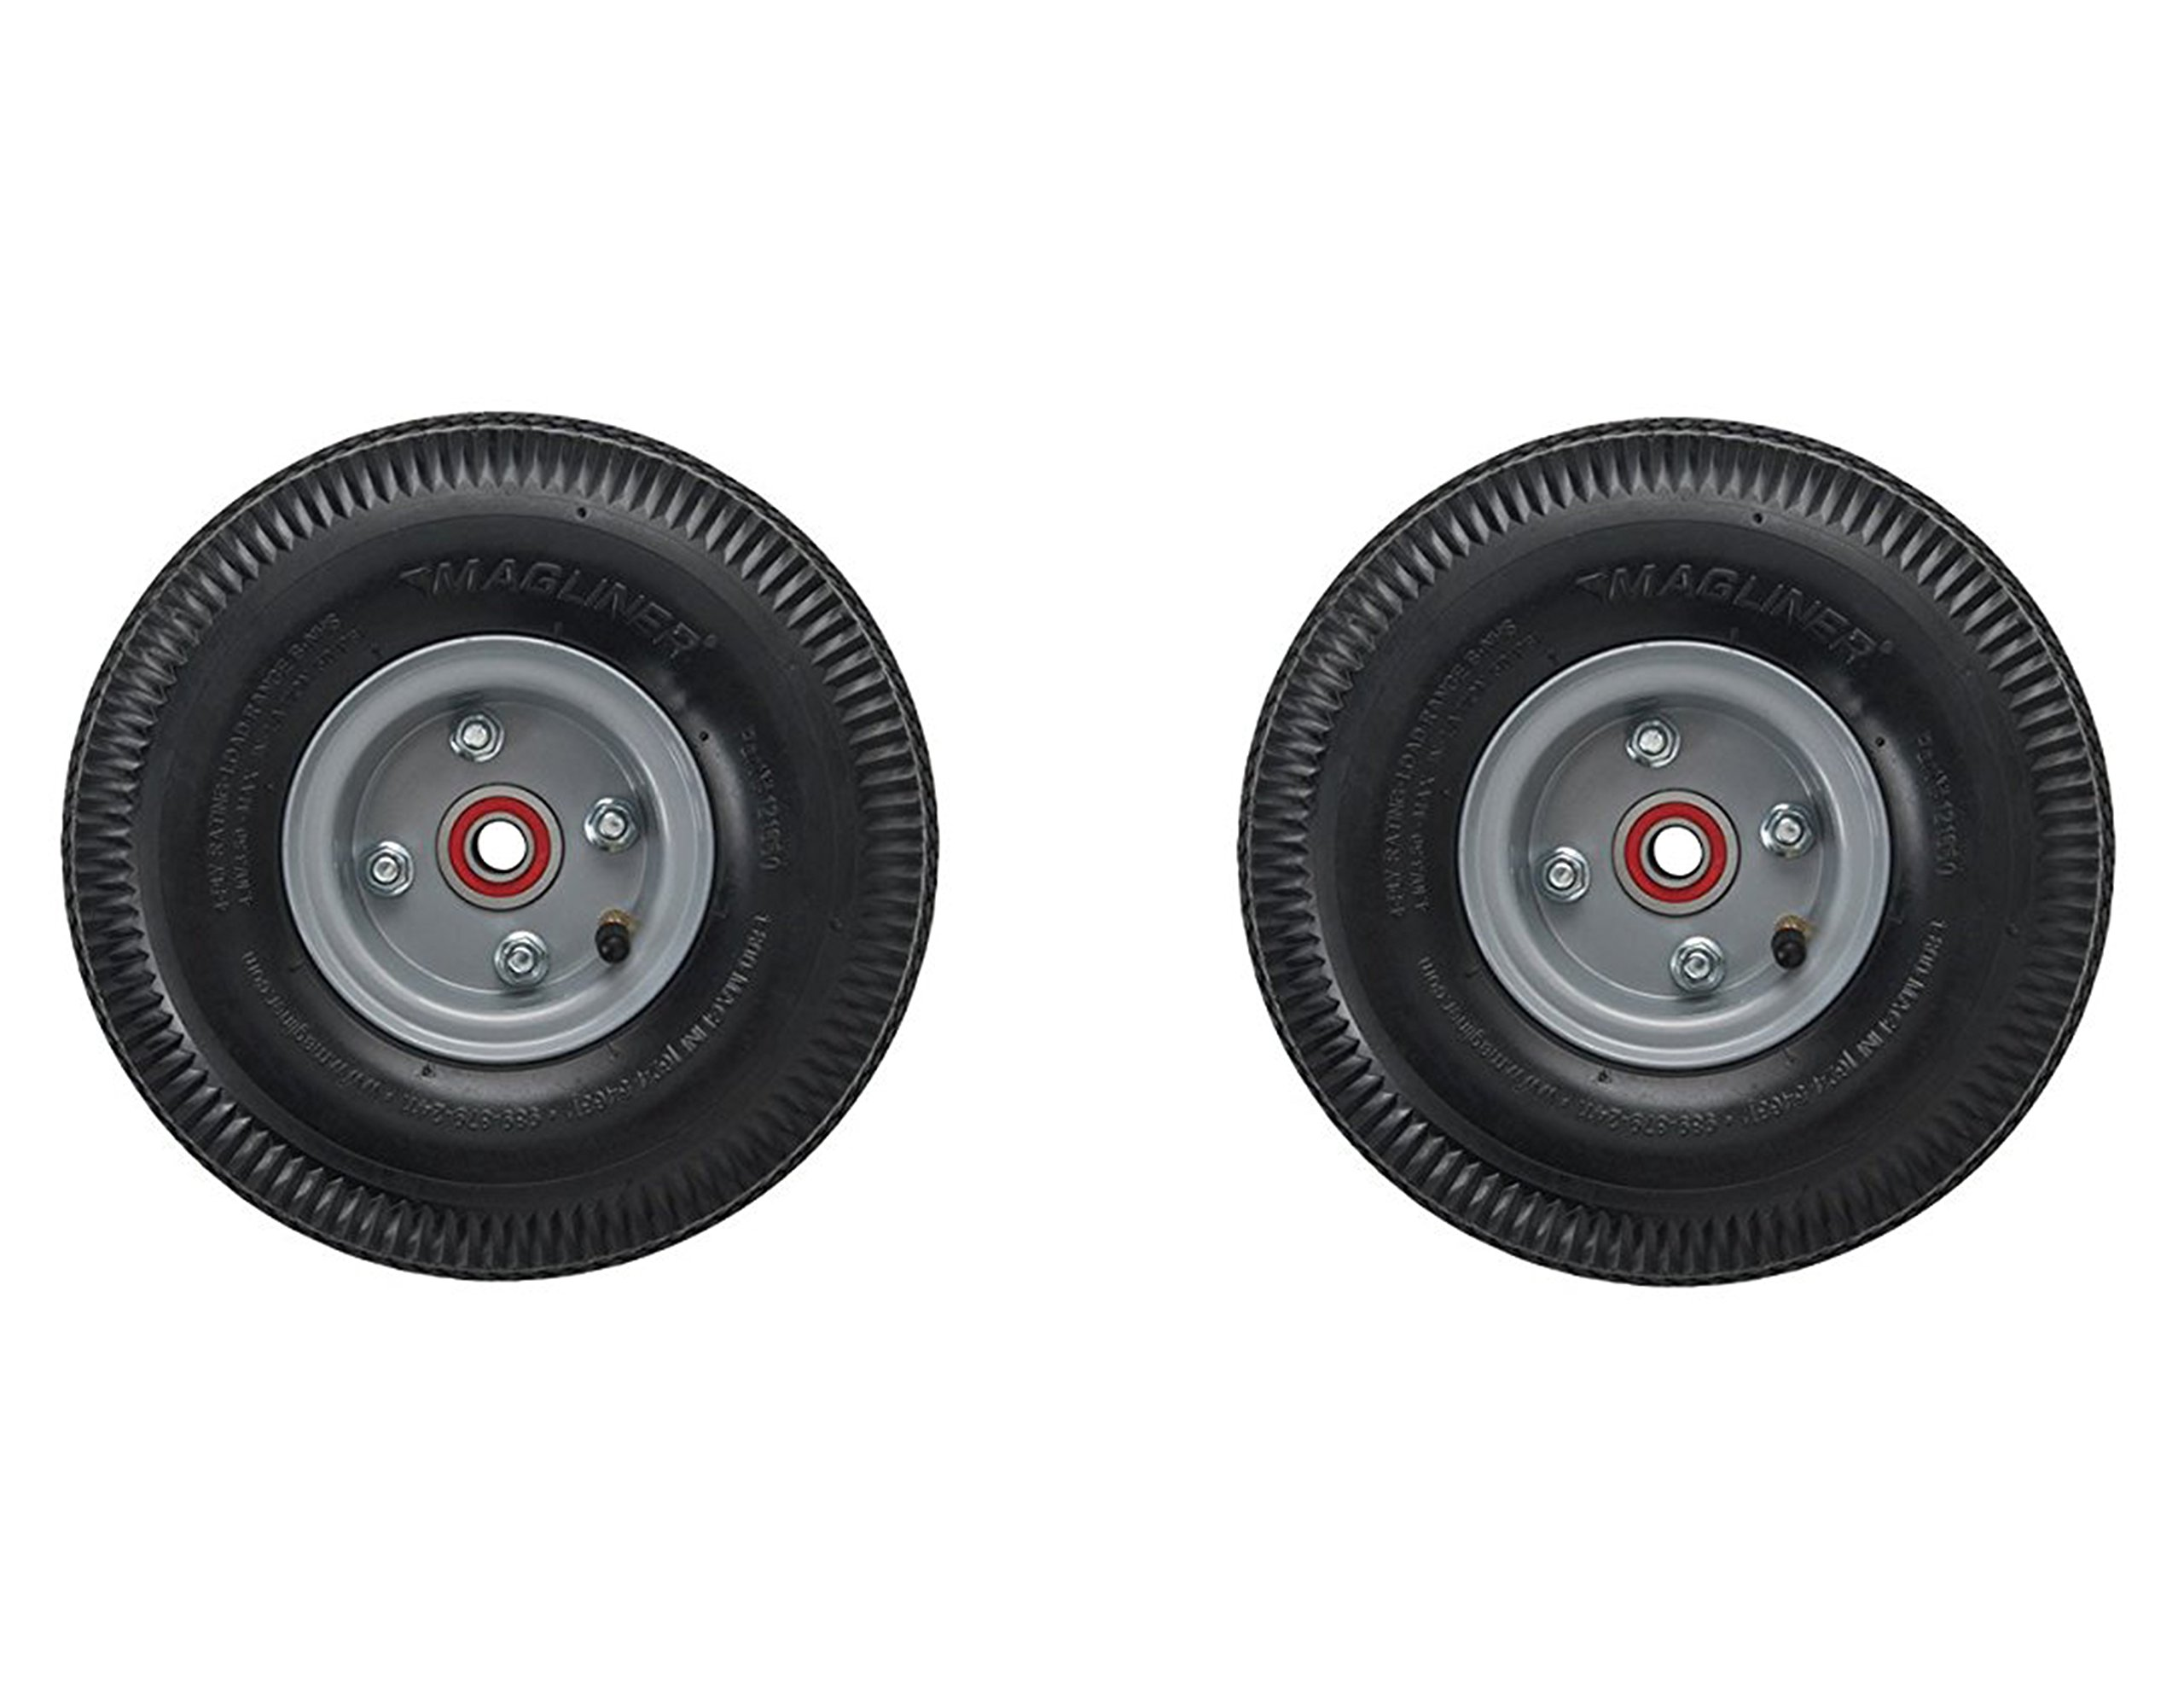 Air Tire 10'' x 3.5'' Pneumatic Wheel For Magliner Hand Truck 121060 (2 Pack)